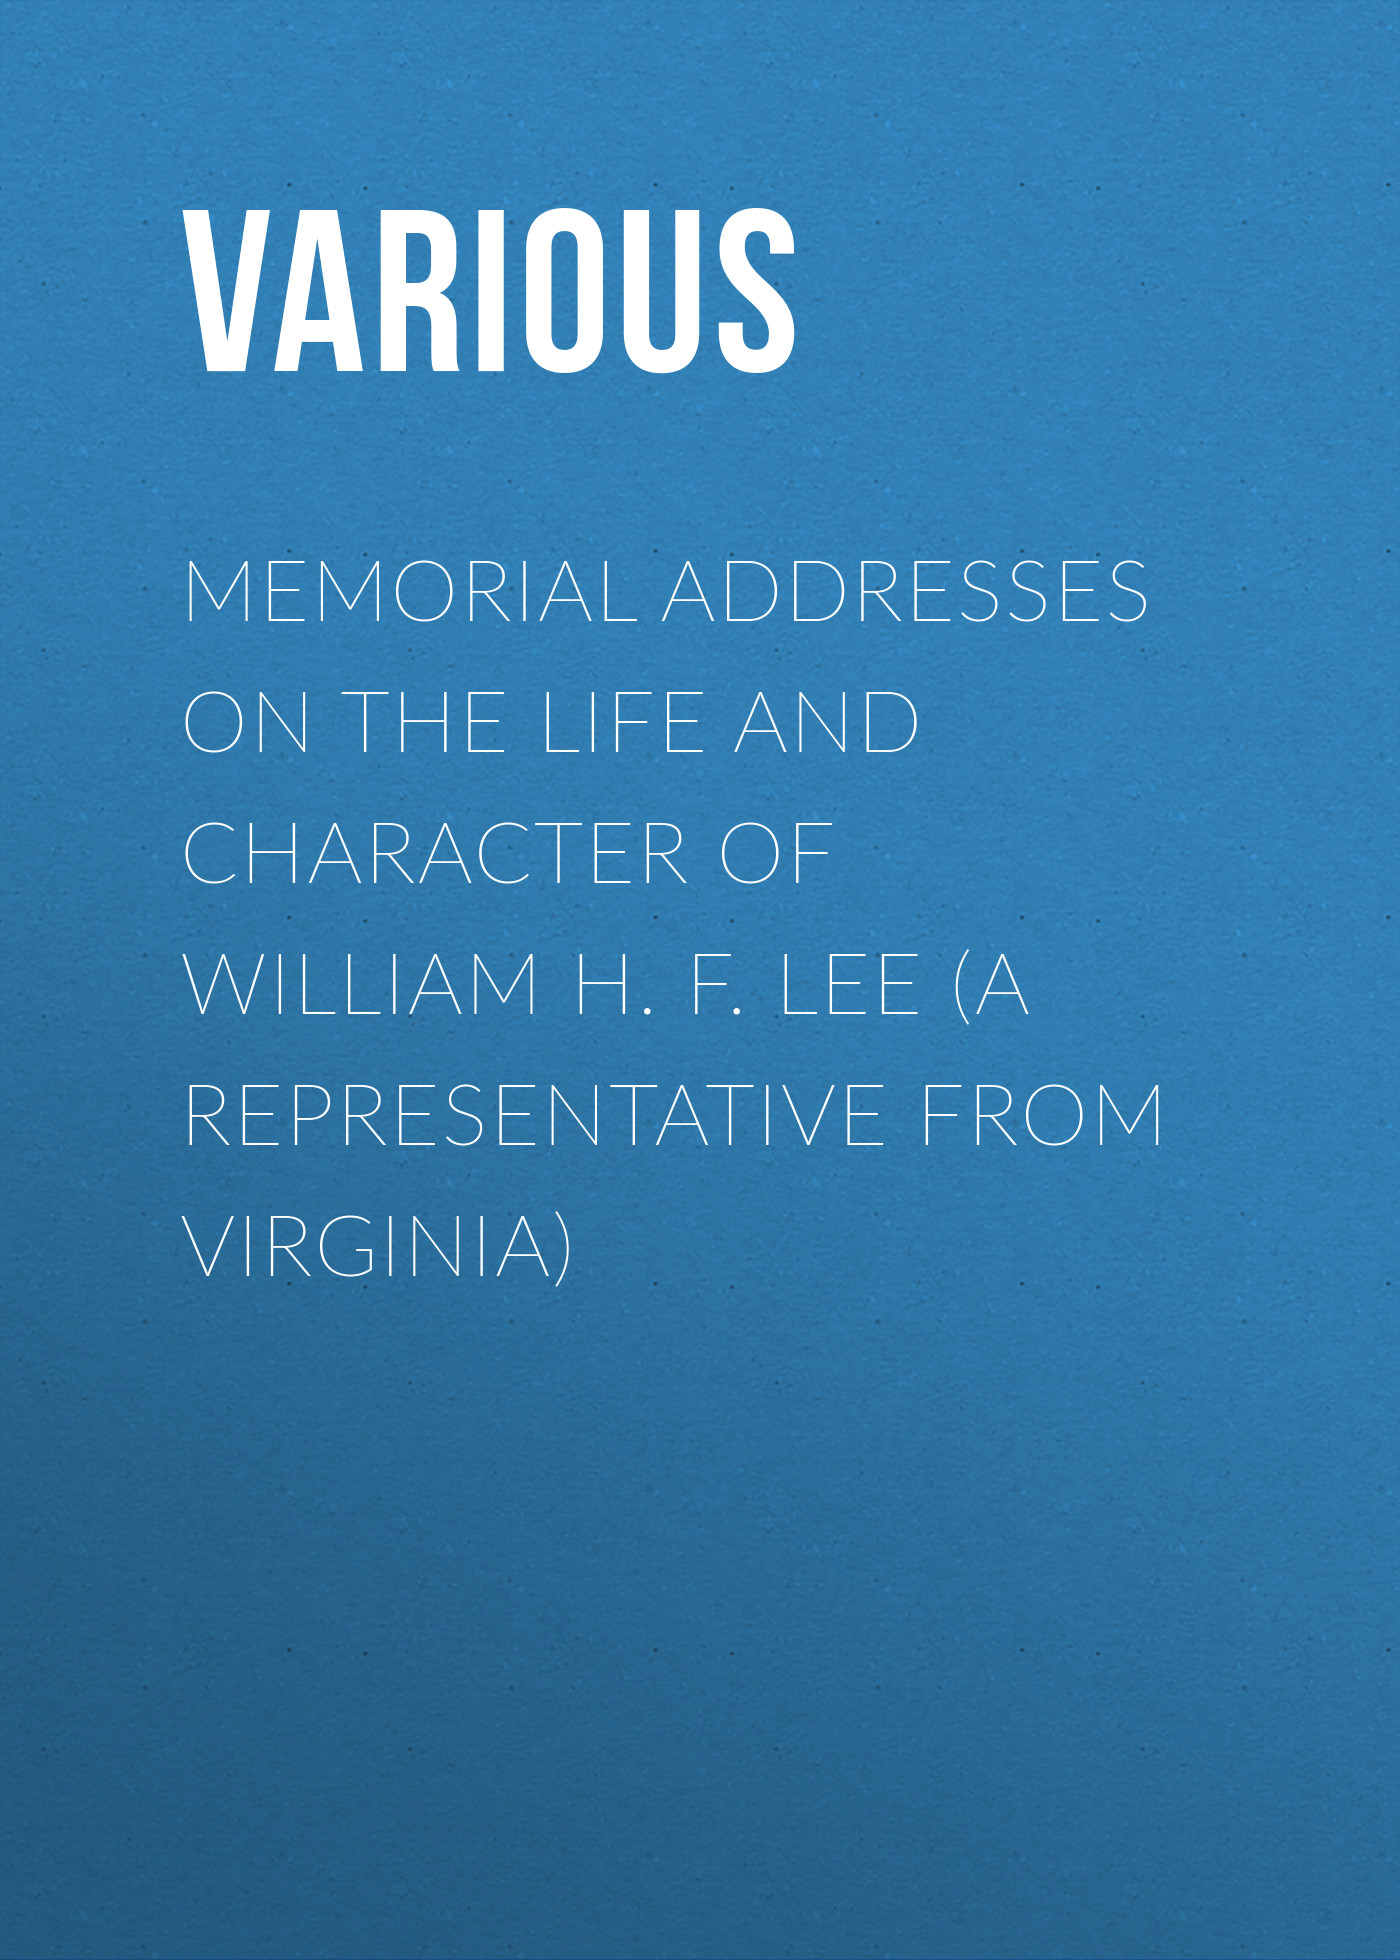 Various Memorial Addresses on the Life and Character of William H. F. Lee (A Representative from Virginia) memorial addresses on the life and character of william d kelley a representative from pennsylvania delivered in the house of representatives and in the senate fifty first congress first session